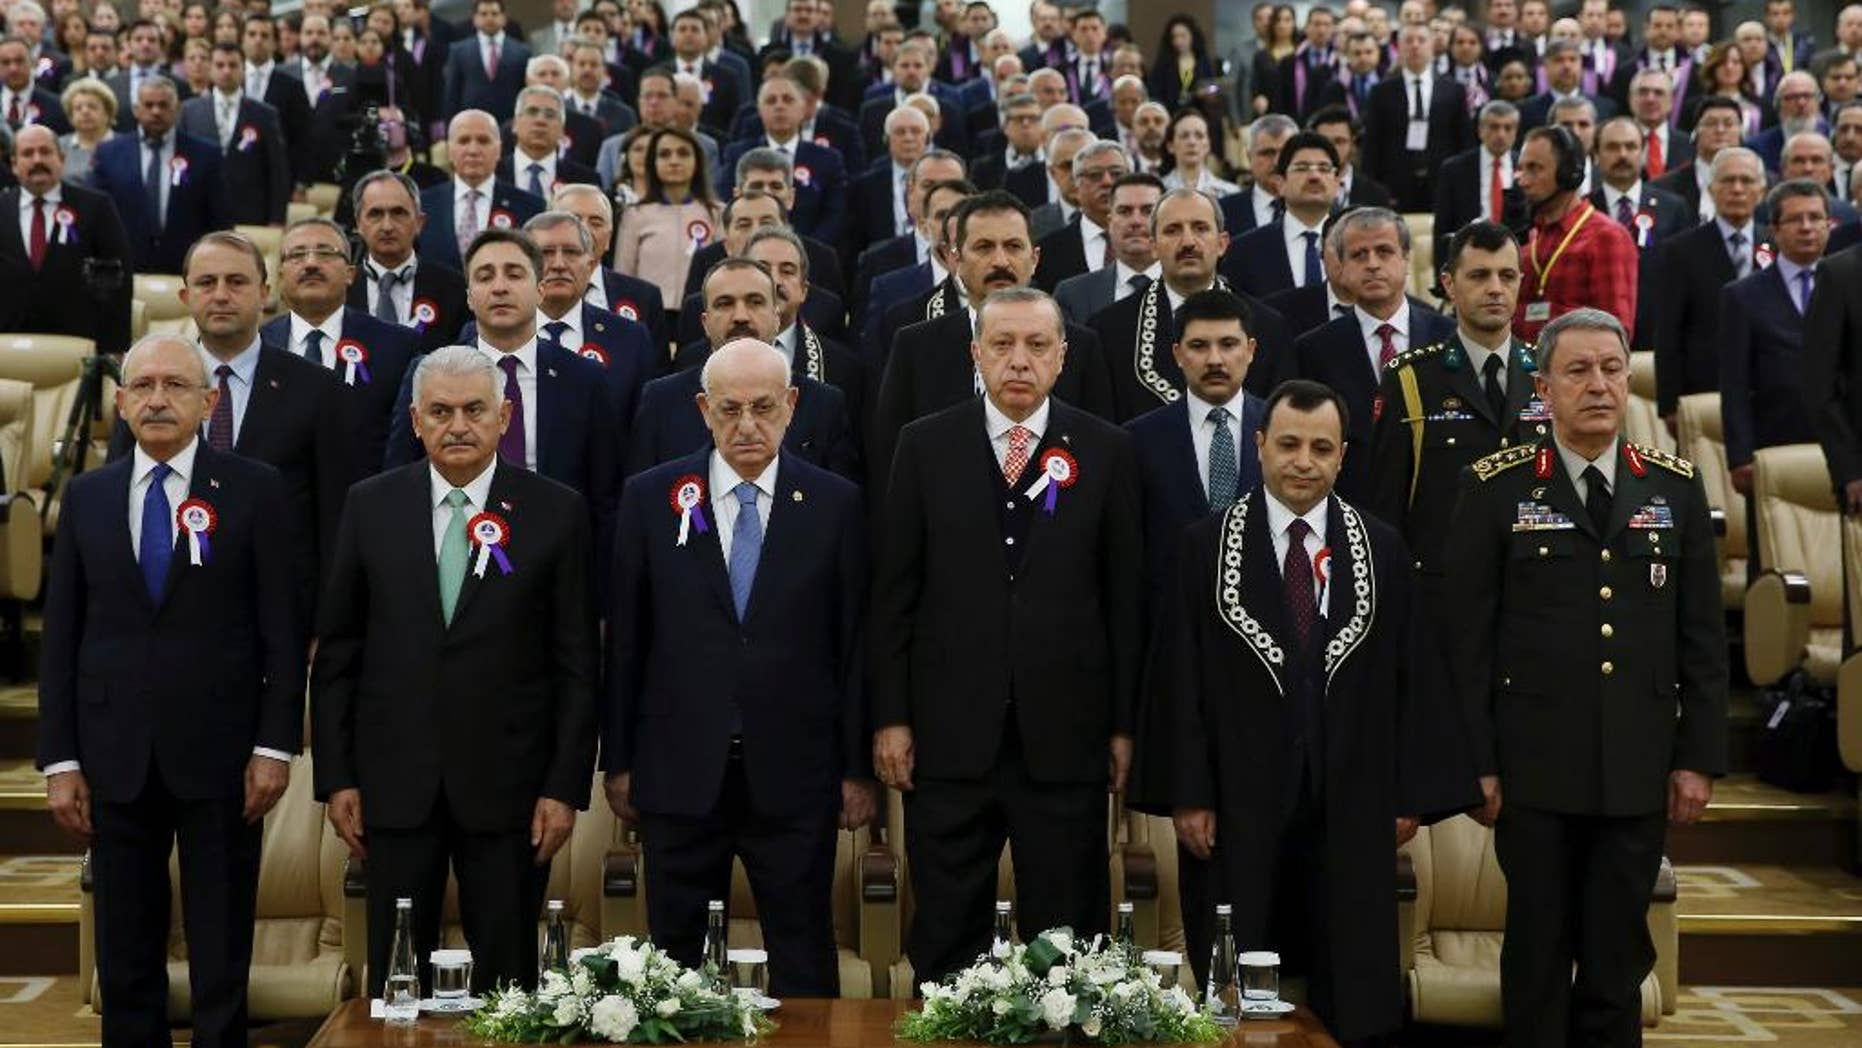 Turkey's President Recep Tayyip Erdogan, 4th left, accompanied by, from left to right, Kemal Kilicdaroglu, leader of the Republican People's Party (CHP), Prime Minister Binali Yildirim, Ismail Kahraman, Speaker of the Grand National Assembly of Turkey, Turkish Constitutional Court Chairman Zuhtu Arslan and Chief of the General Staff of the Turkish Armed Forces, Hulusi Akar, attend a ceremony as part of the 55th anniversary of the founding of Turkey's Constitutional Court, in Ankara, Turkey, on Tuesday, April 25, 2017. Legislators representing Europe's top human rights body, the Strasbourg-France-based Parliamentary Assembly of the Council of Europe, on Tuesday voted in favour of re-opening monitoring procedures in Turkey in a move that reflects its strong concern over the functioning of democratic institutions in the country.(Press Presidency Press Service Pool Photo via AP)